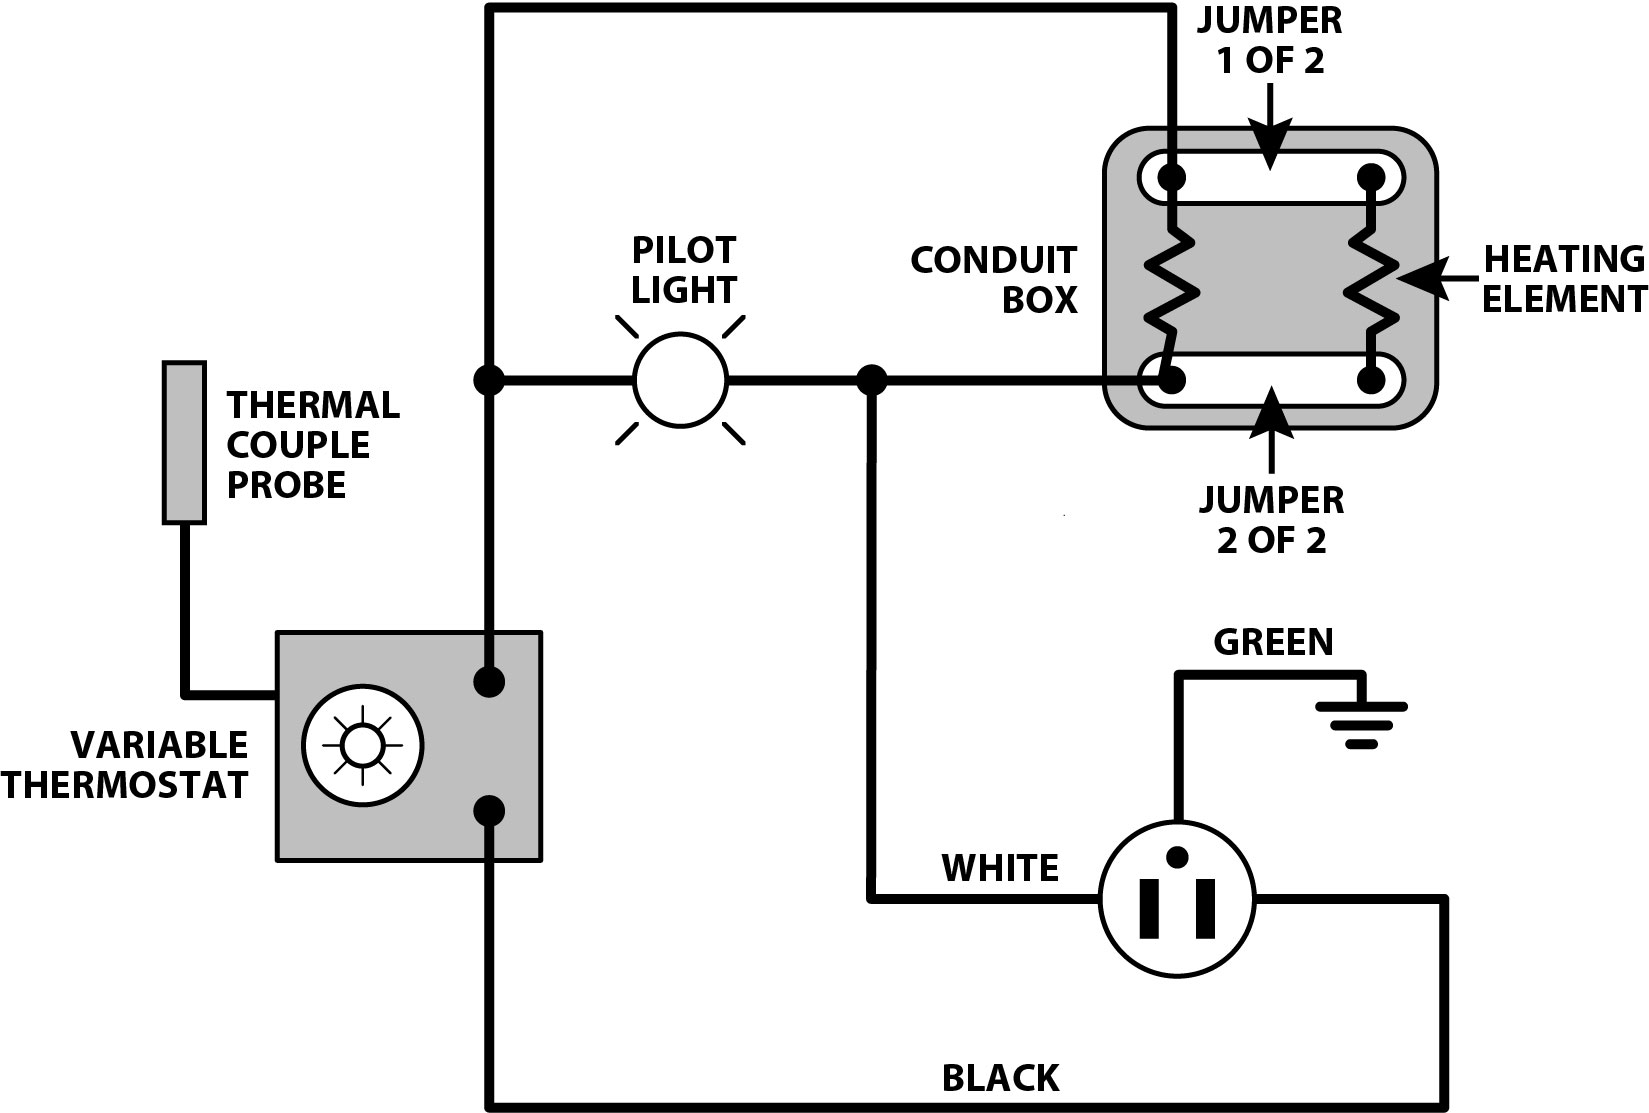 220 volt baseboard heater thermostat wiring diagram dayton time delay relay hayward super pump hot water